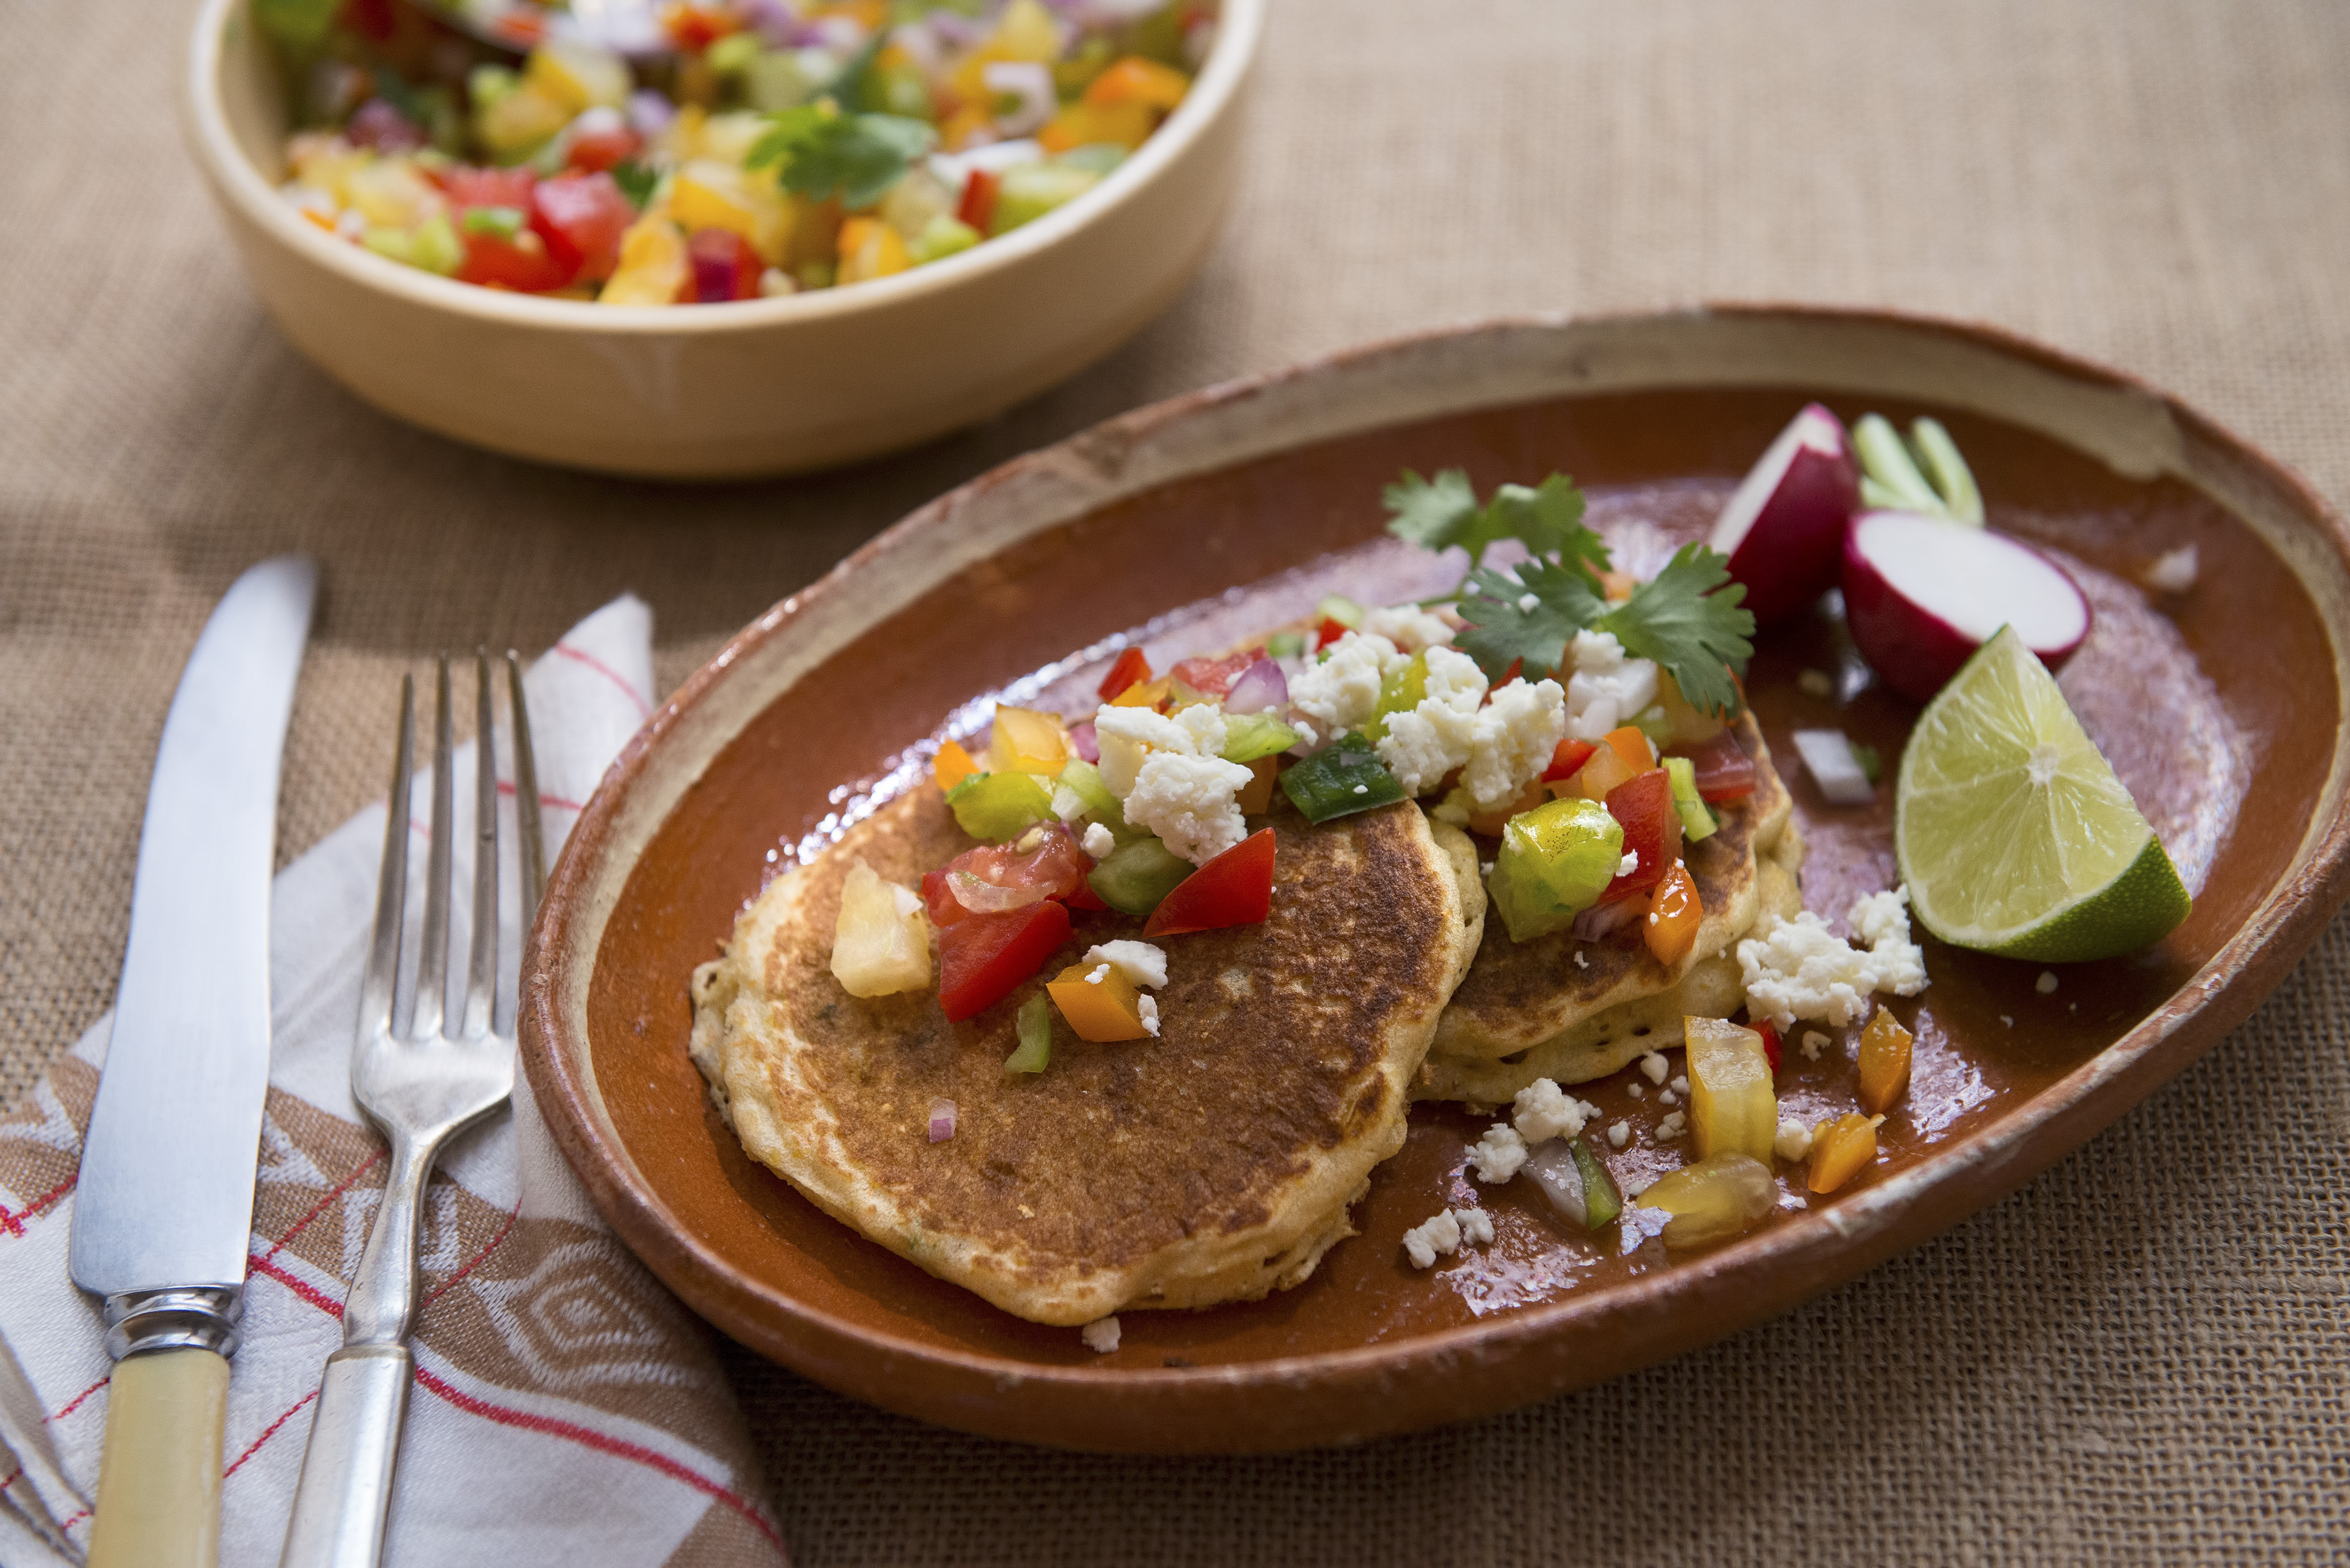 Sweet, tender corn is one of summer's great joys, and the inspiration for this recipe using corn griddle cakes, which are like pancakes but more substantial.